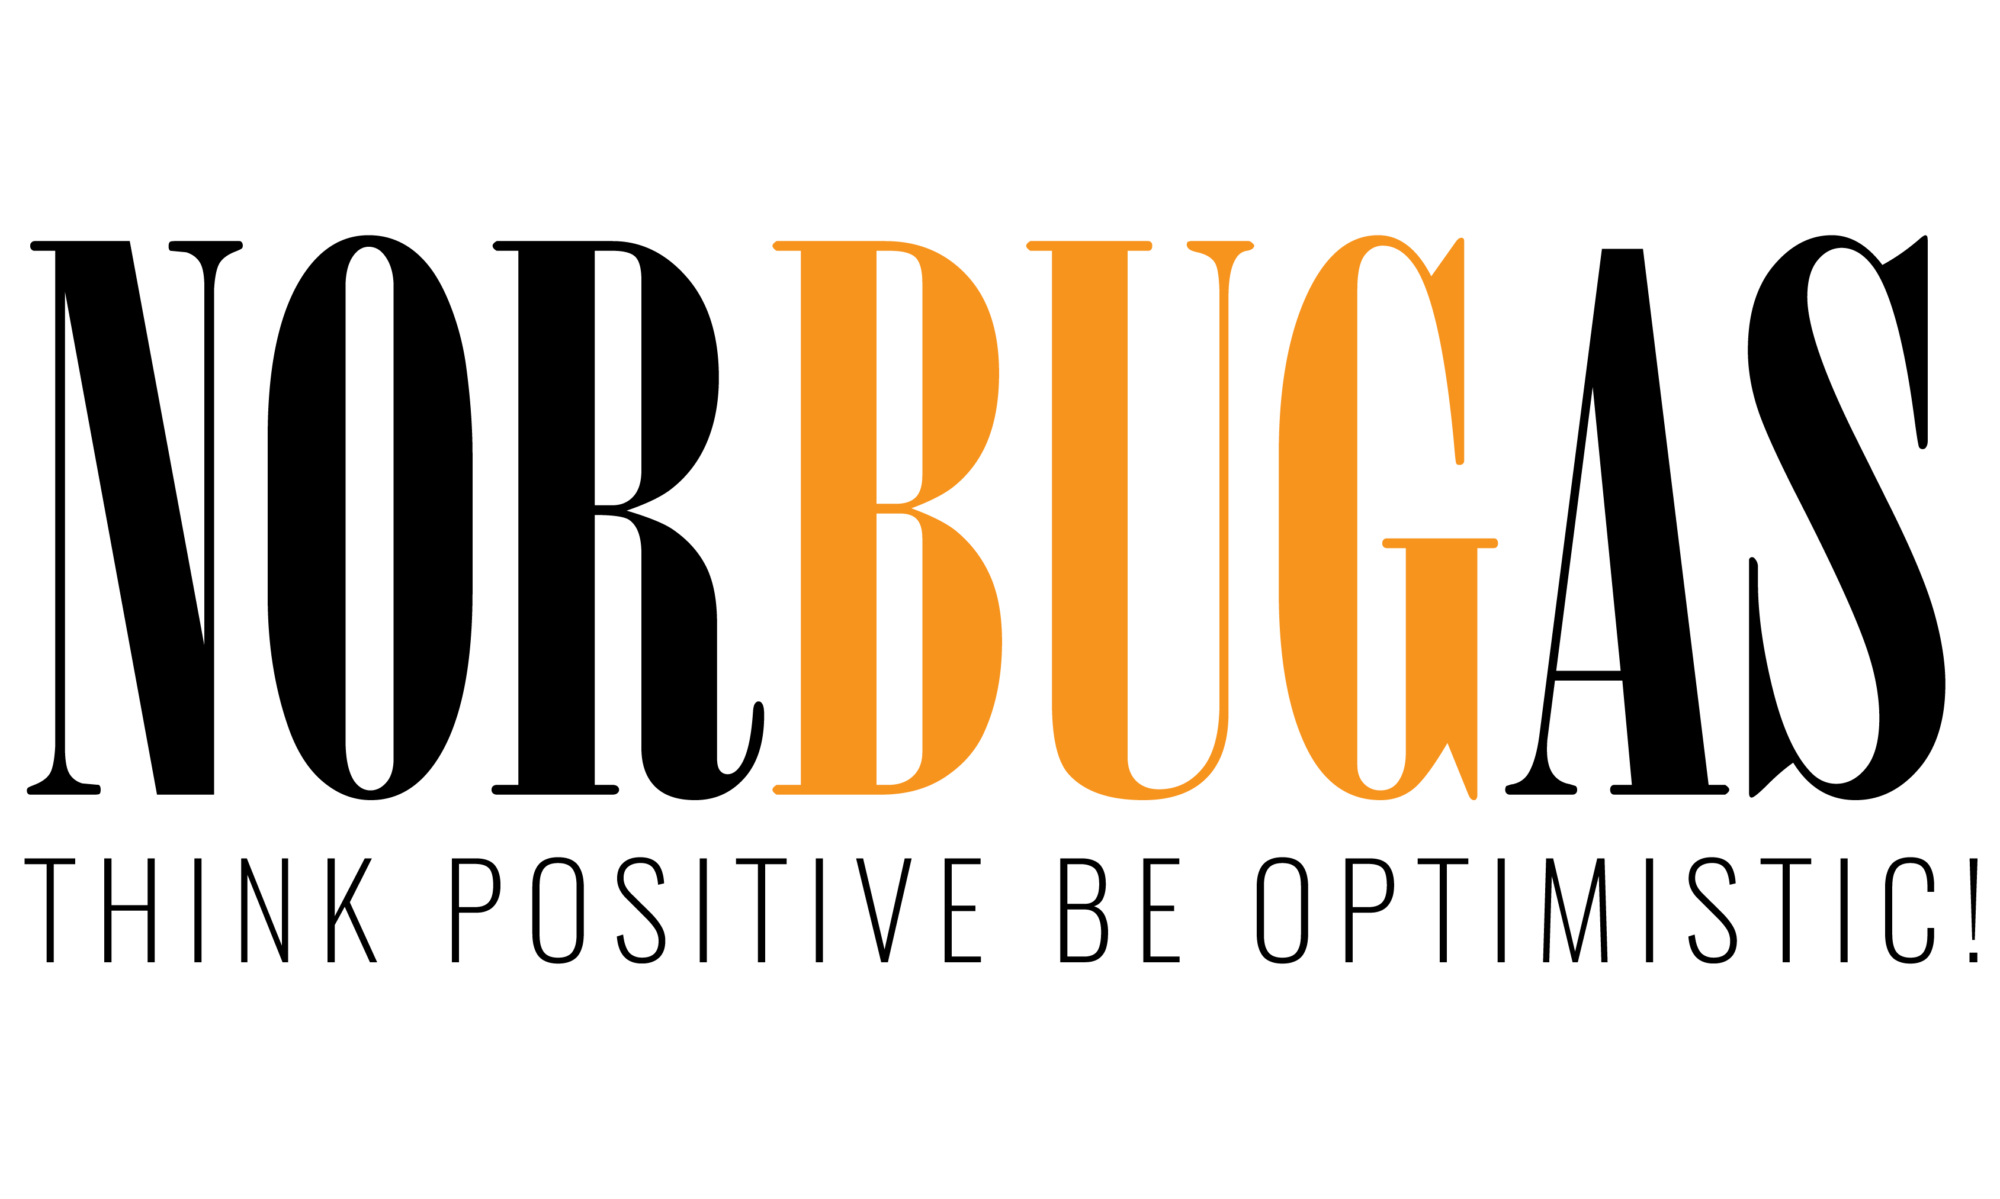 Nor BUG AS